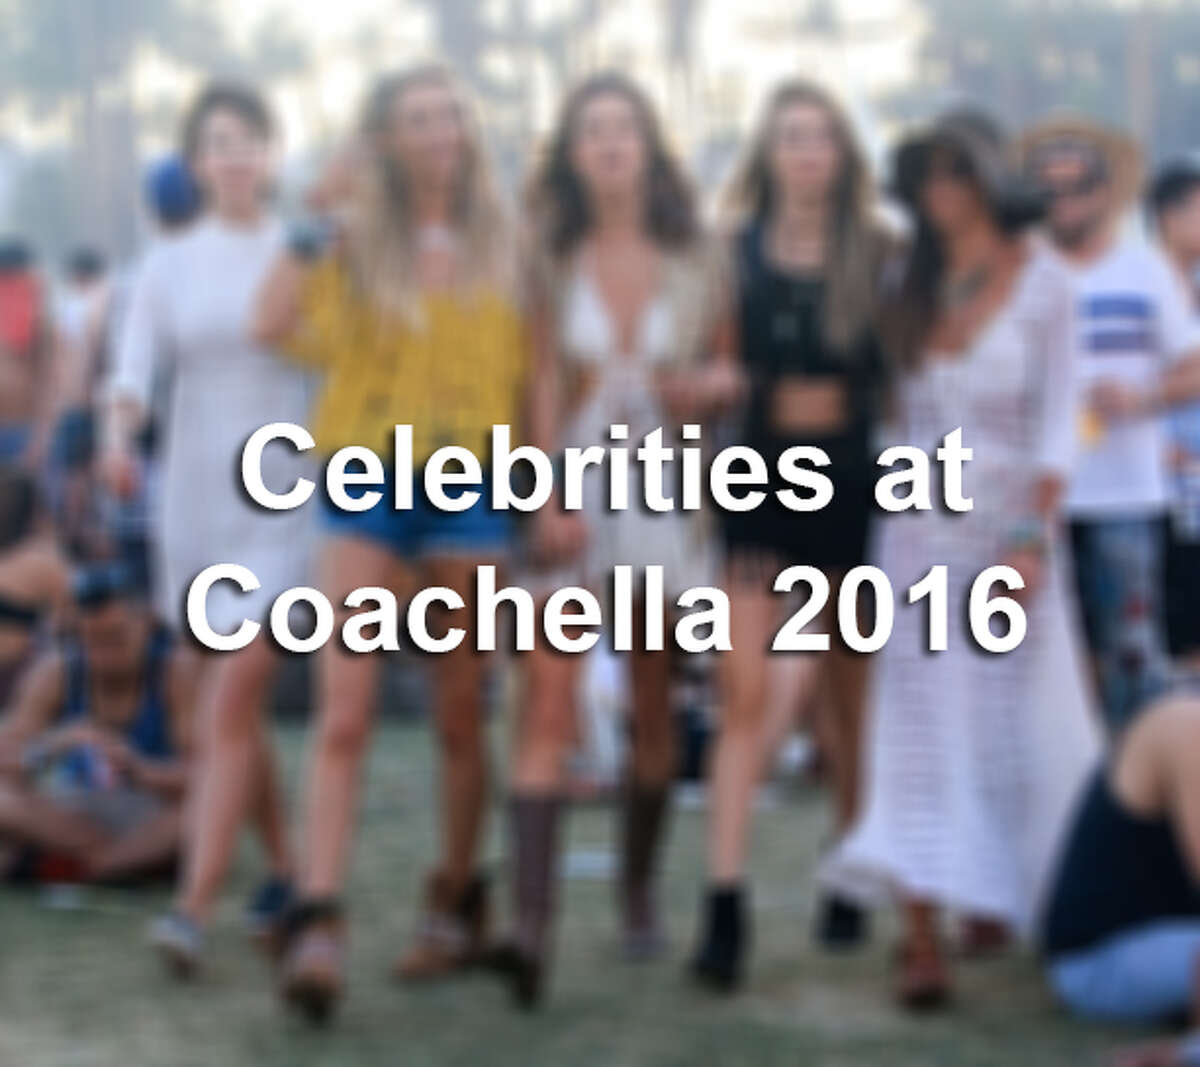 Take a look at which celebrities attended Coachella 2016.